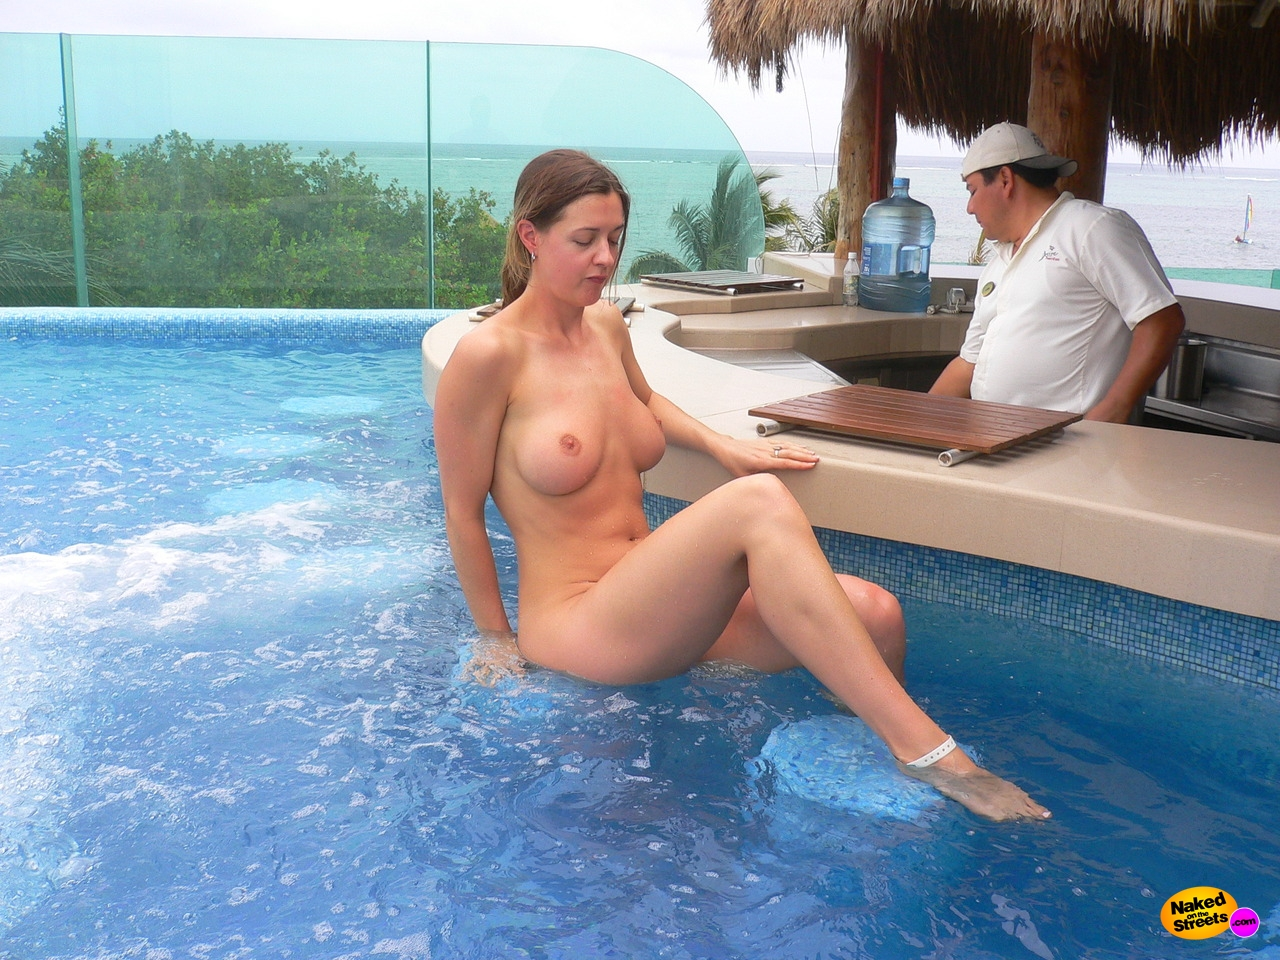 Consider, that Amateur mom nude pool something